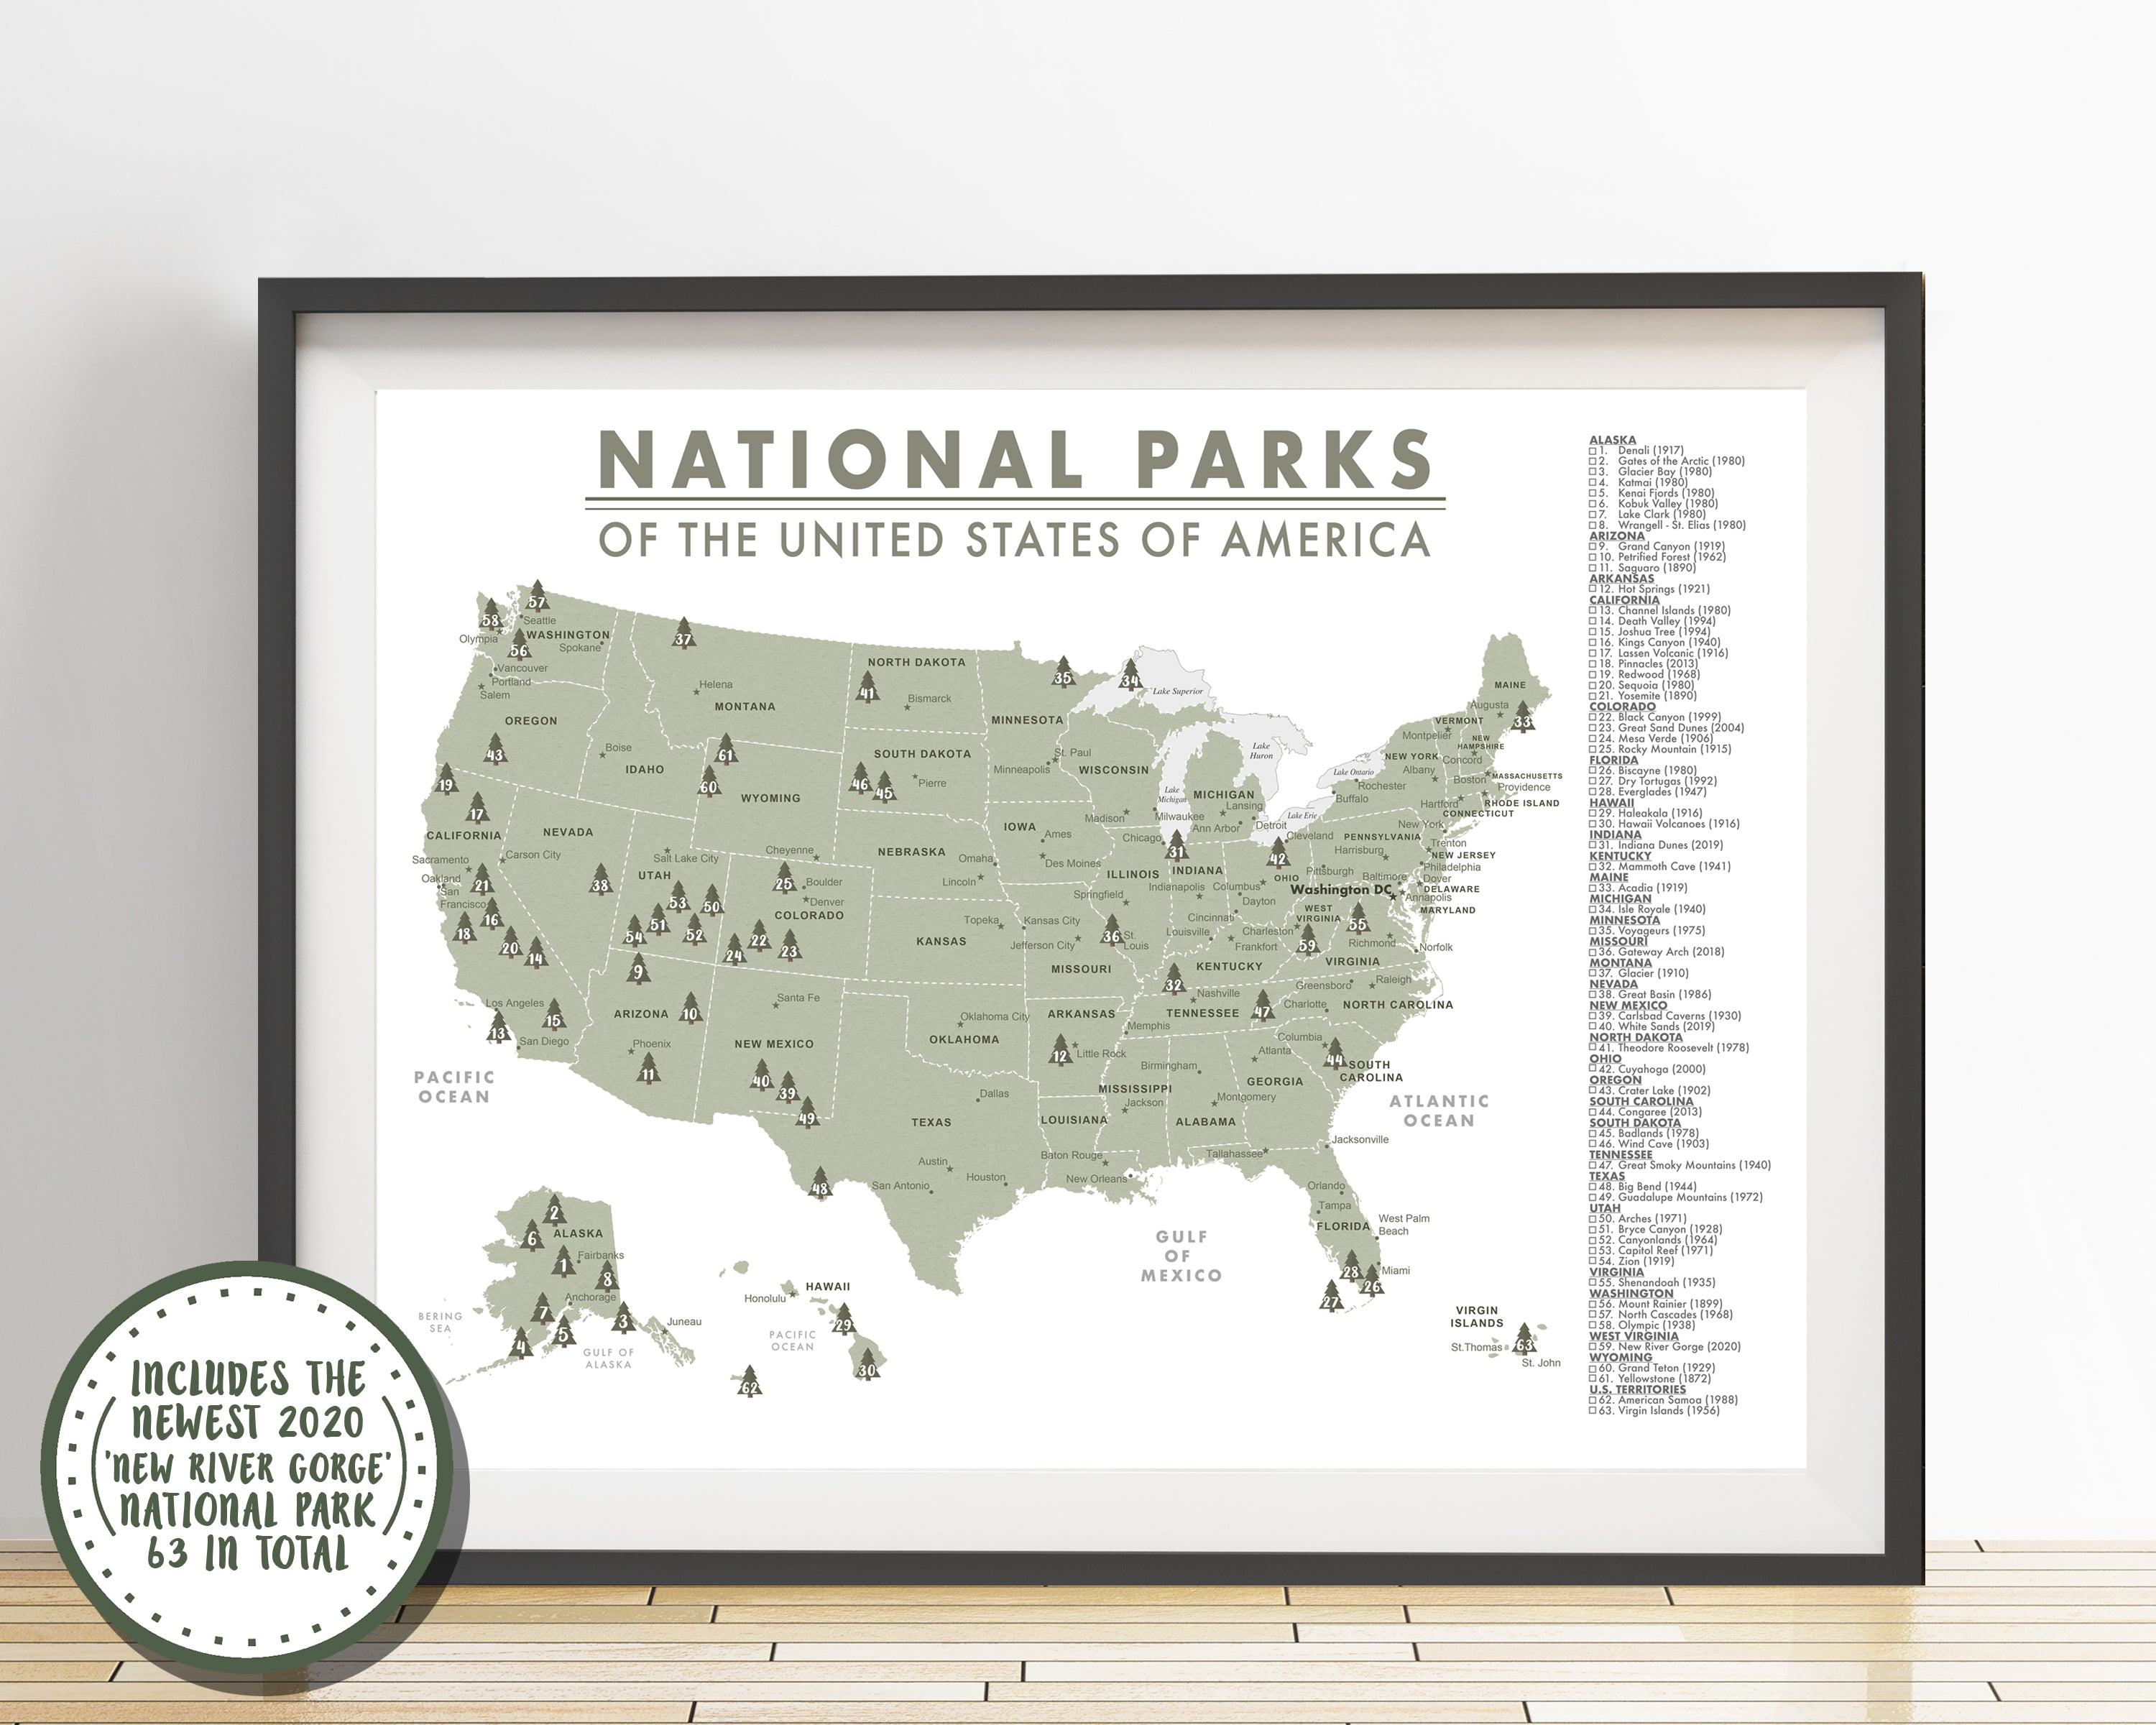 Detailed National Parks Map of the United States - 63 Parks